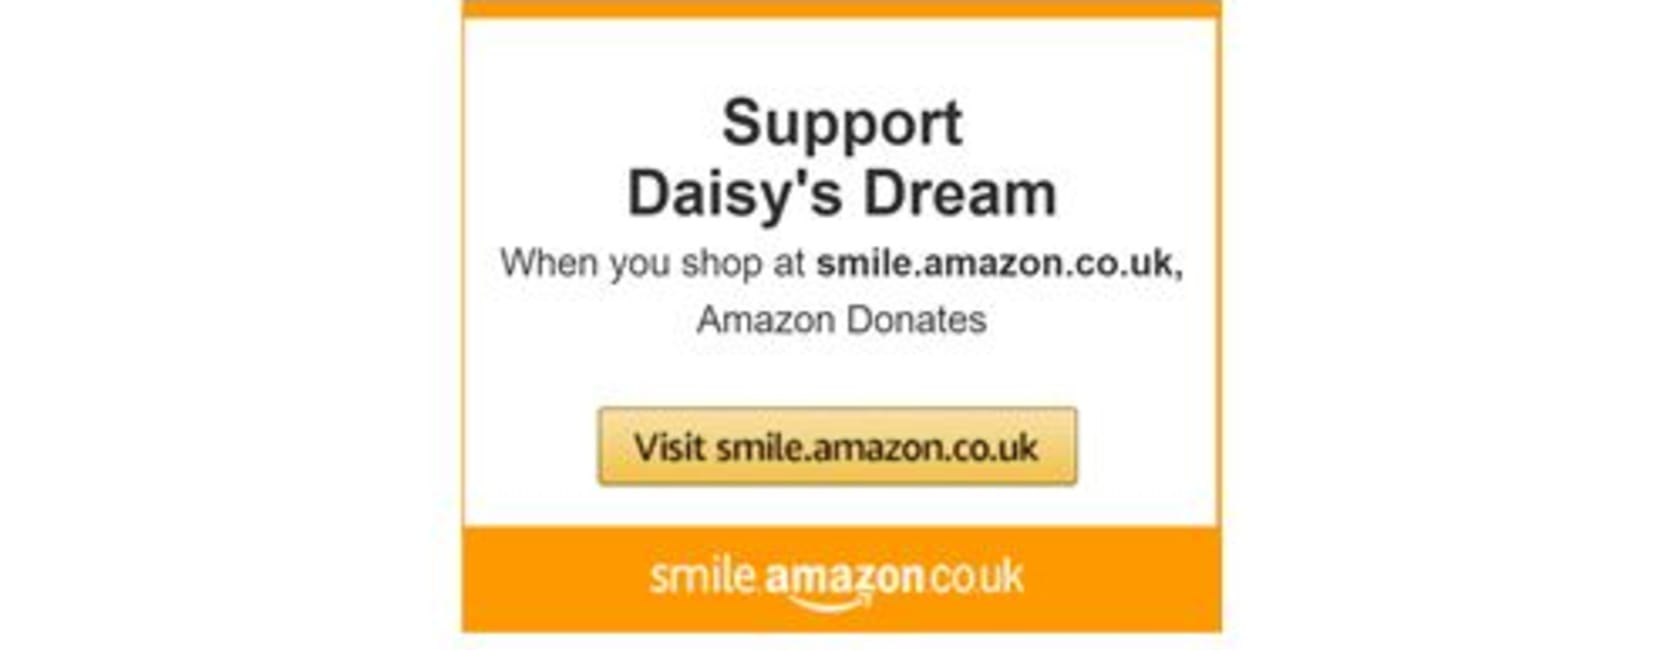 Donate to Daisy's Dream as you shop with AmazonSmile